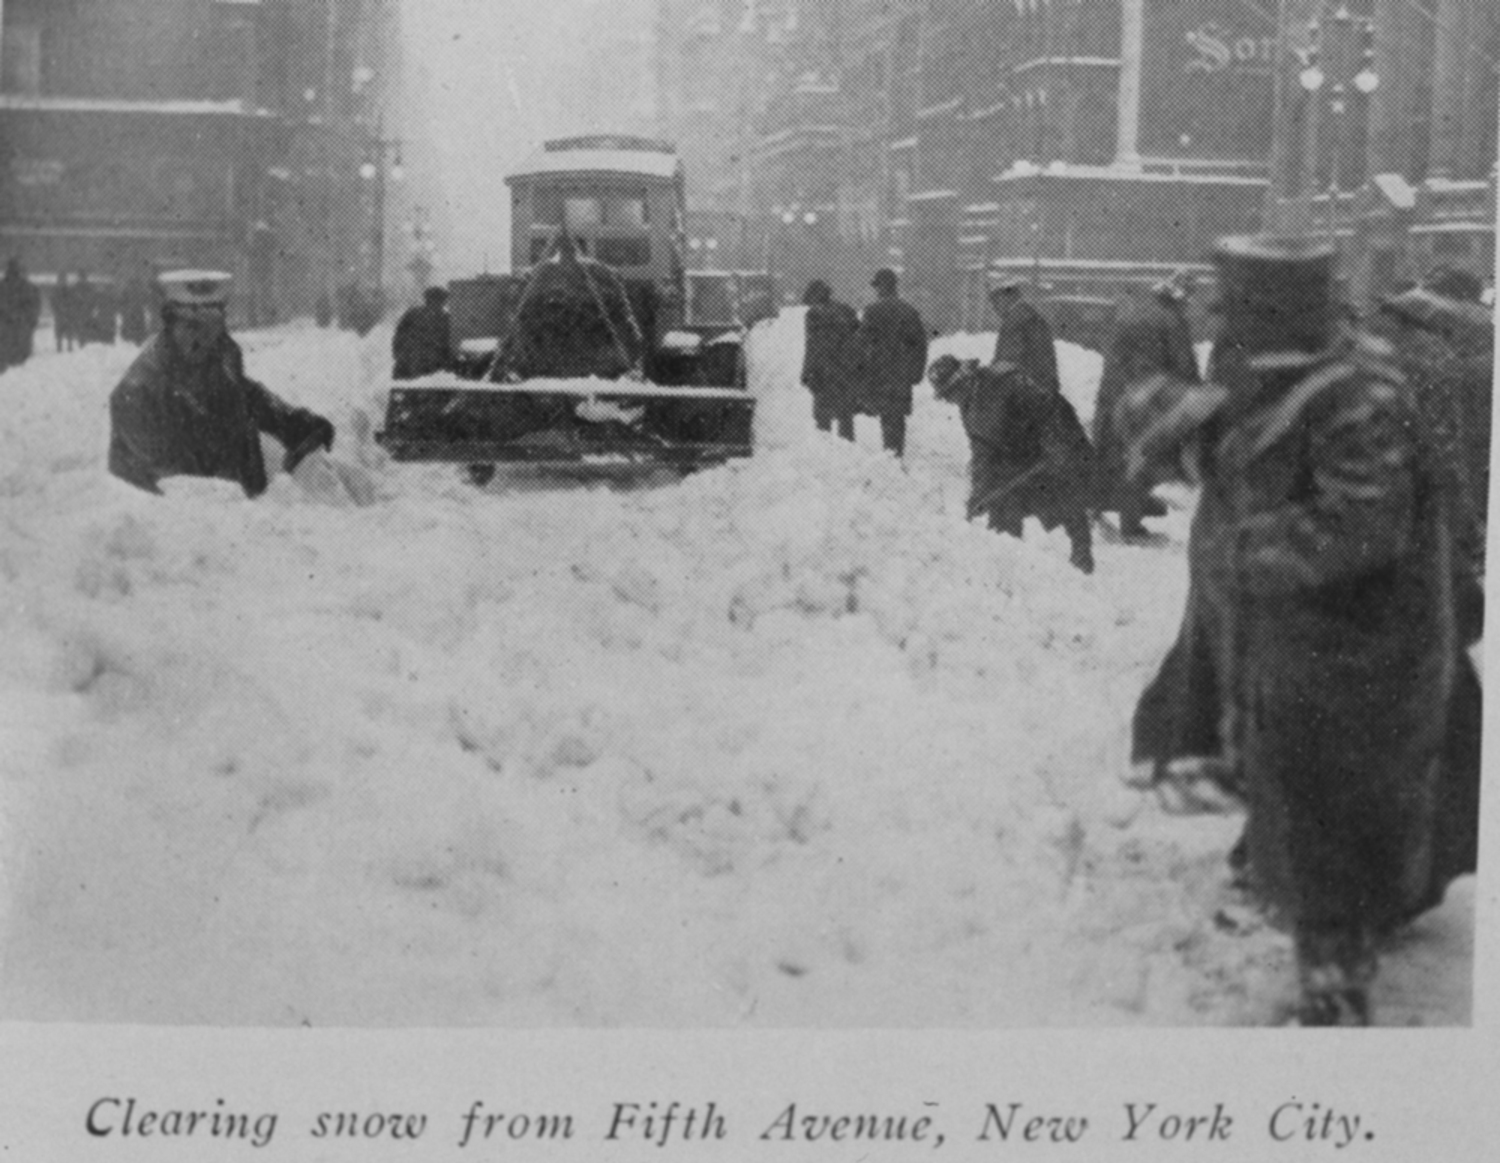 Snow shovelers clearing snow in New York City after a blizzard in 1926.